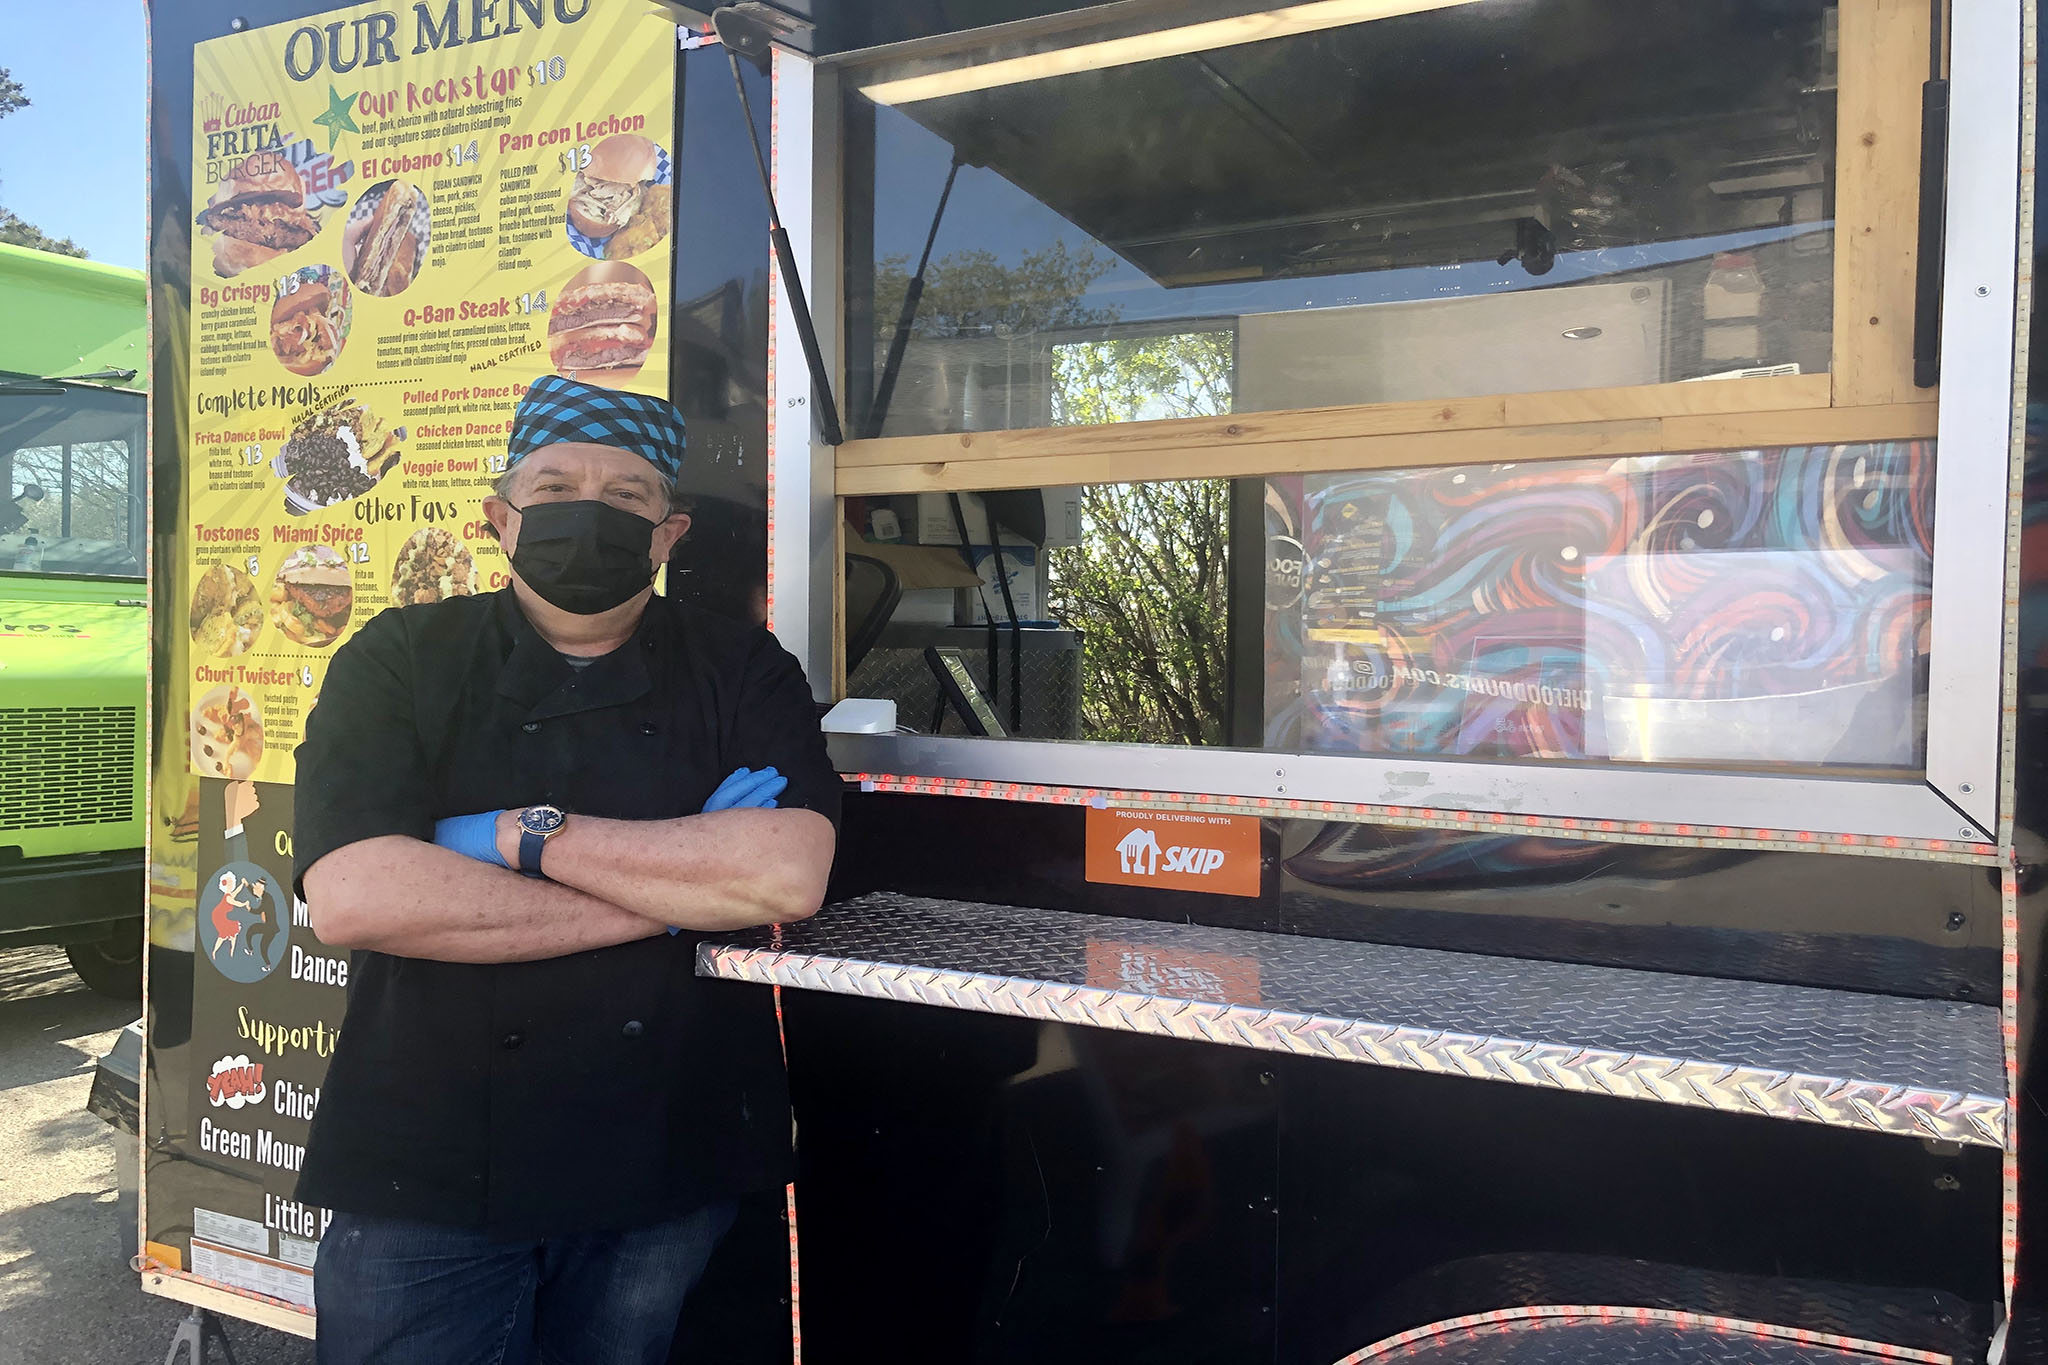 the cuban thing food truck